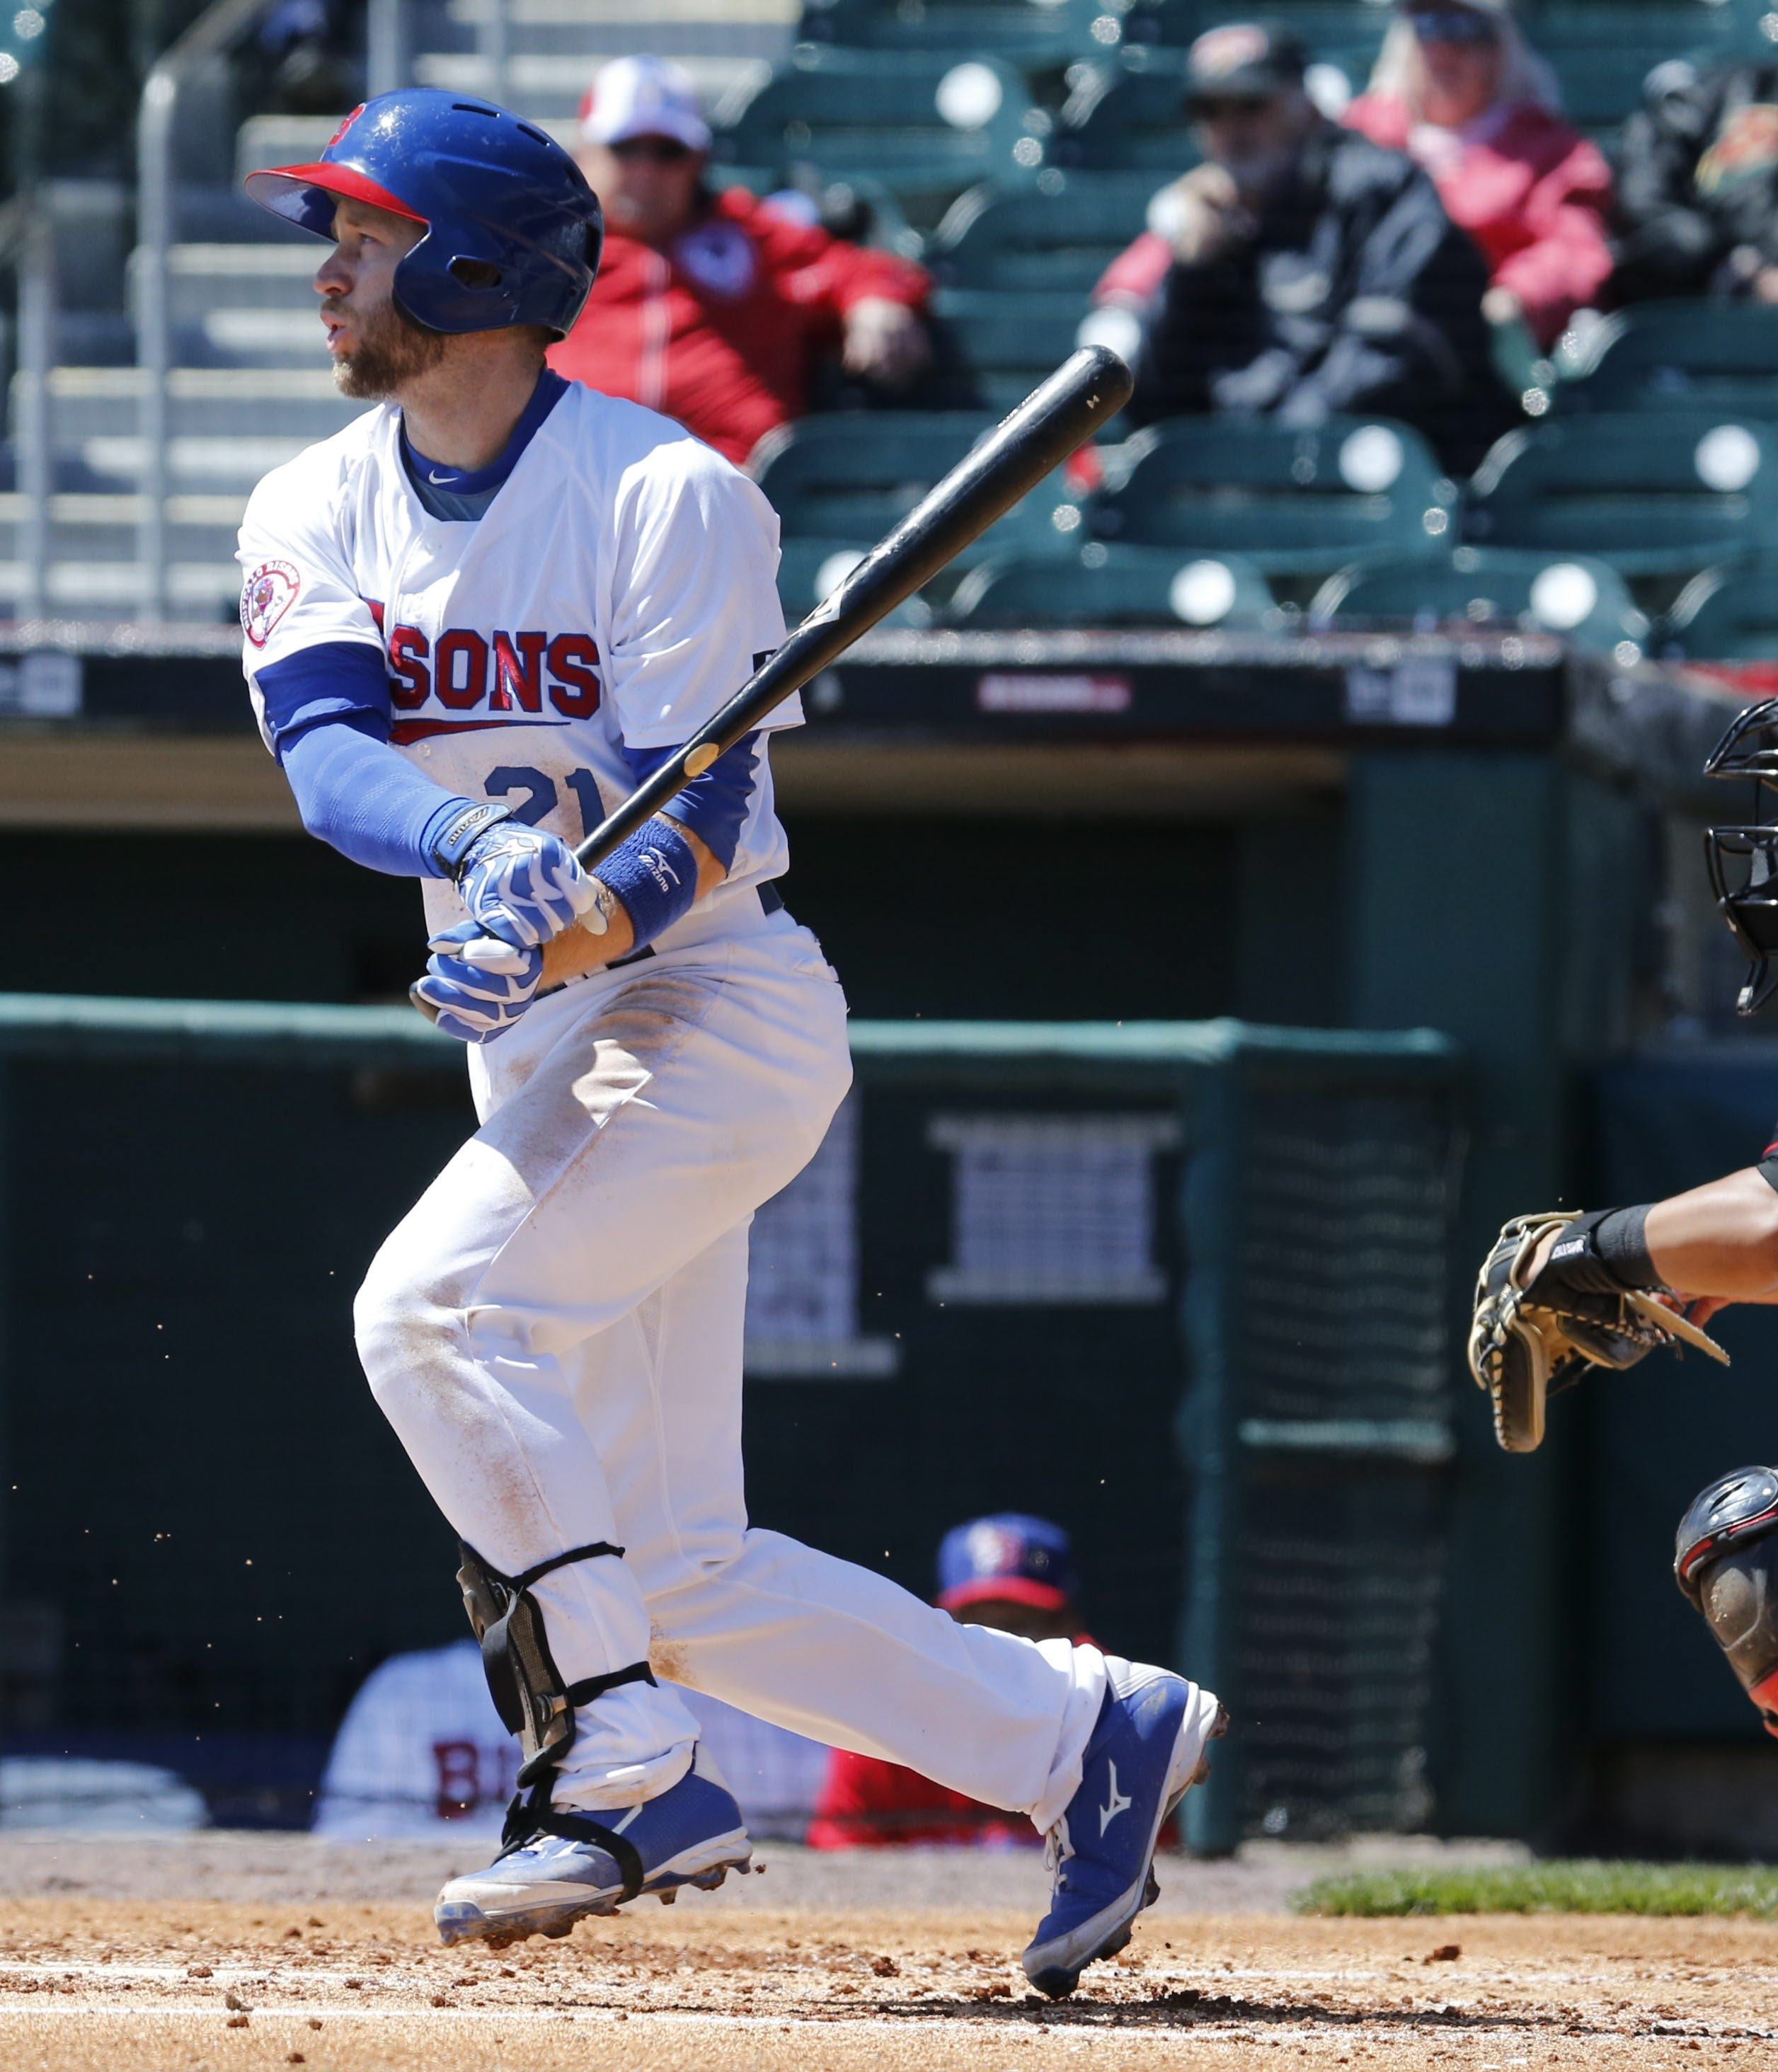 David Adams hopes he's on the comeback trail with the Bisons. (Harry Scull Jr./Buffalo News)